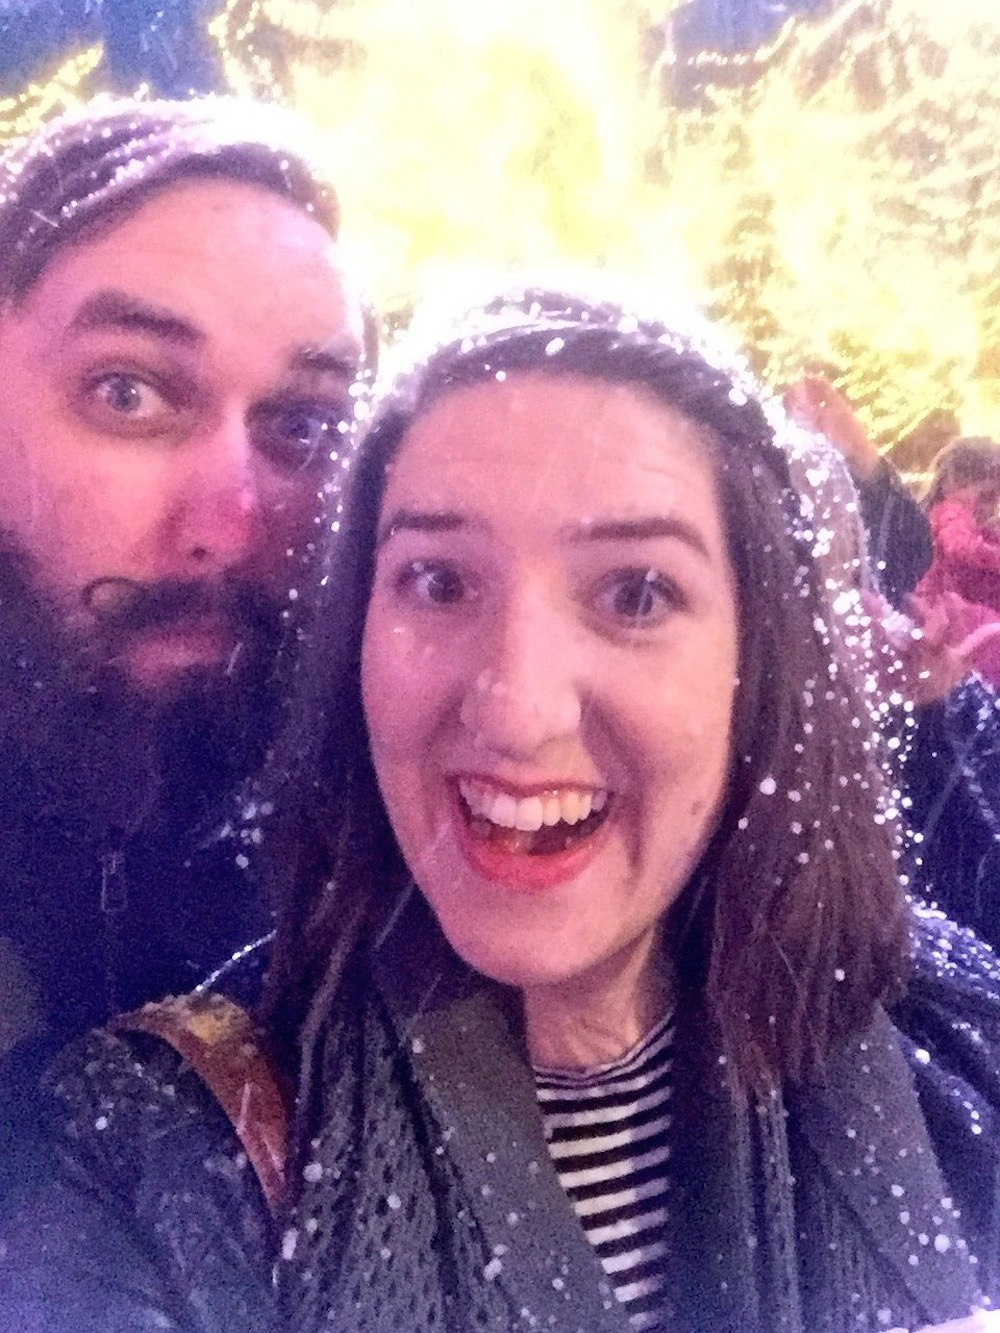 Excited about fake snow at Worlds of Fun's WinterFest in Kansas City, Missouri